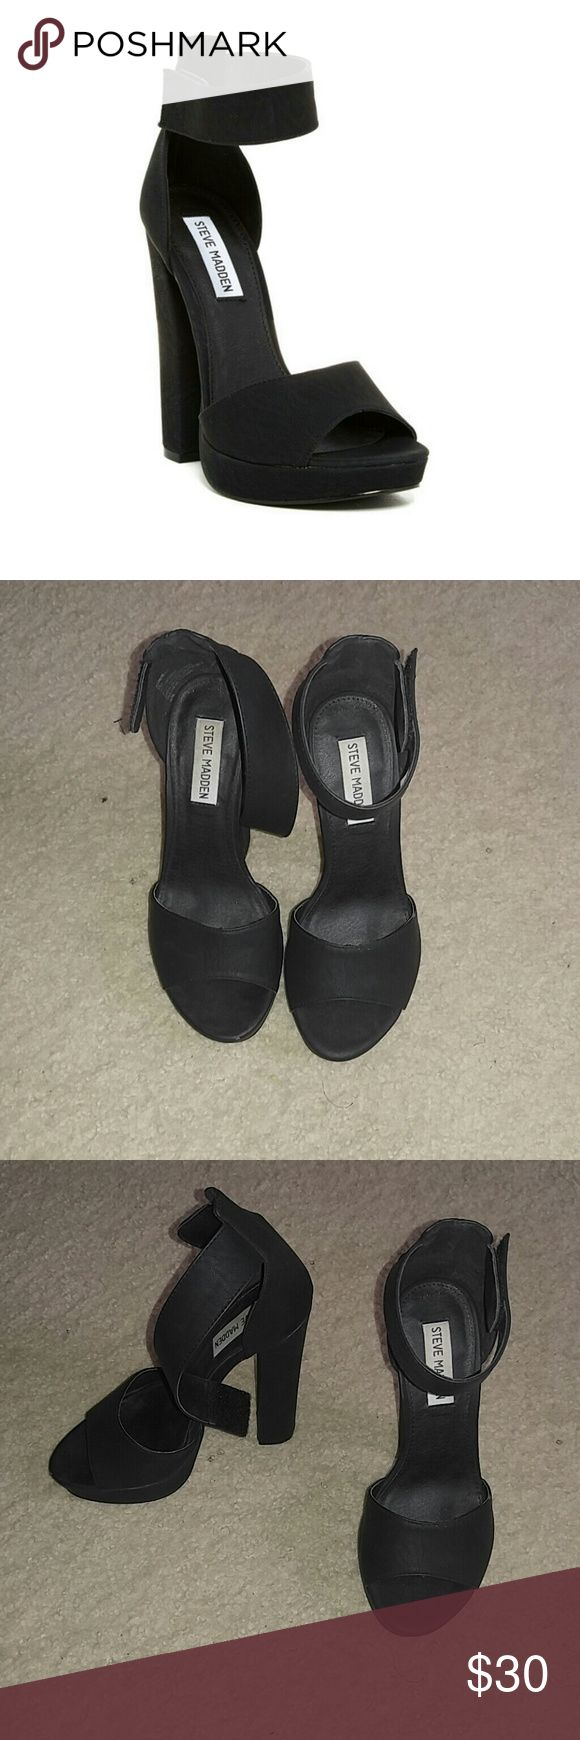 """Steve Madden Bombay Platform Hell Good condition . Sz 7.  - Open toe - hook-and-loop closure ankle strap closure - Approx. 5.25"""" heel, 7/8"""" platform - Imported Nick in leather disclosed Steve Madden Shoes Platforms"""